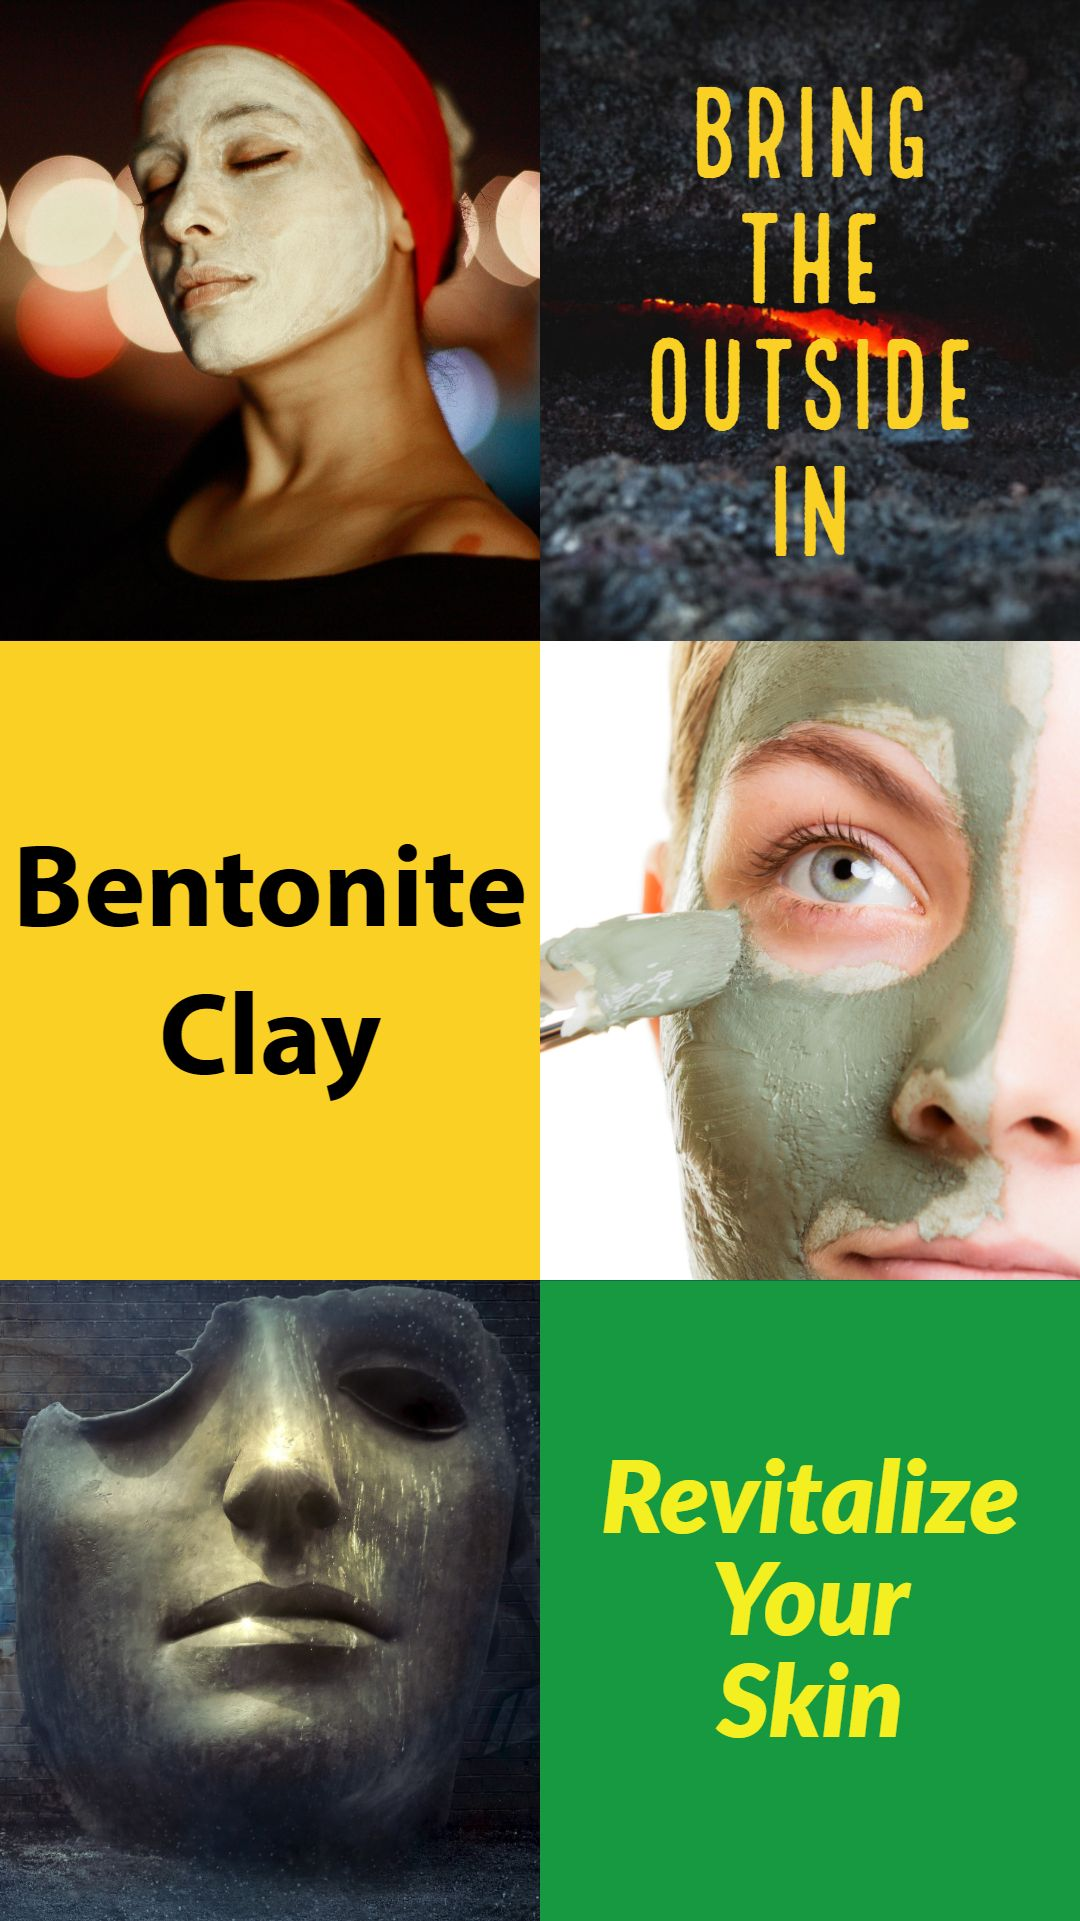 Benotnite Clay - What is it and How is it used.